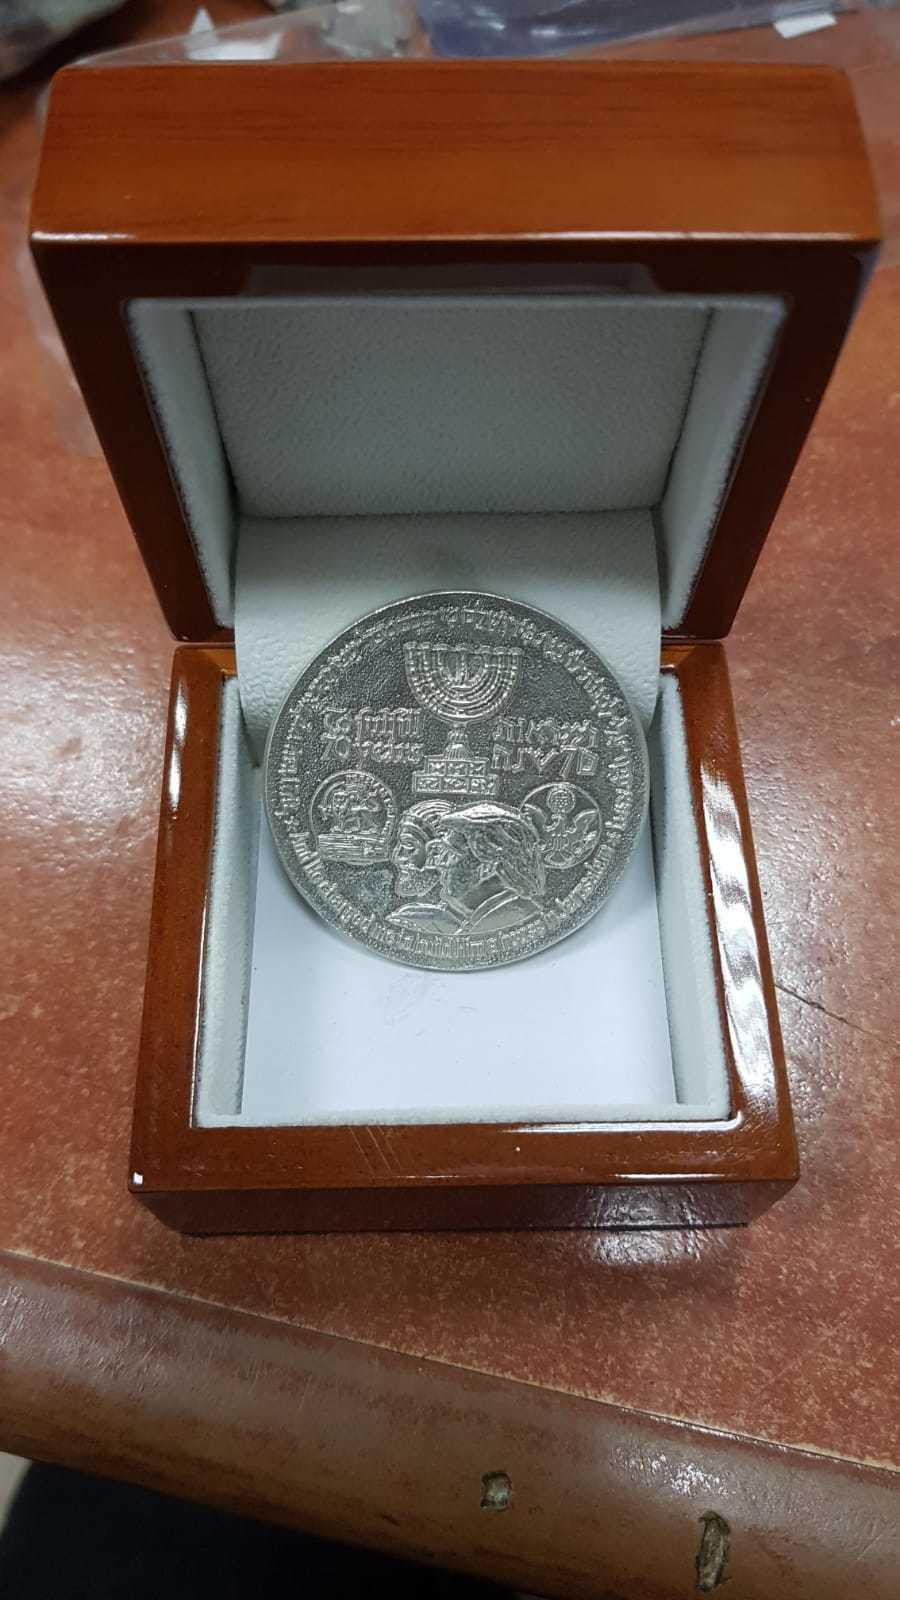 NEW!! The 70 Years Israel Redemption - Temple Coin SOLID SILVER